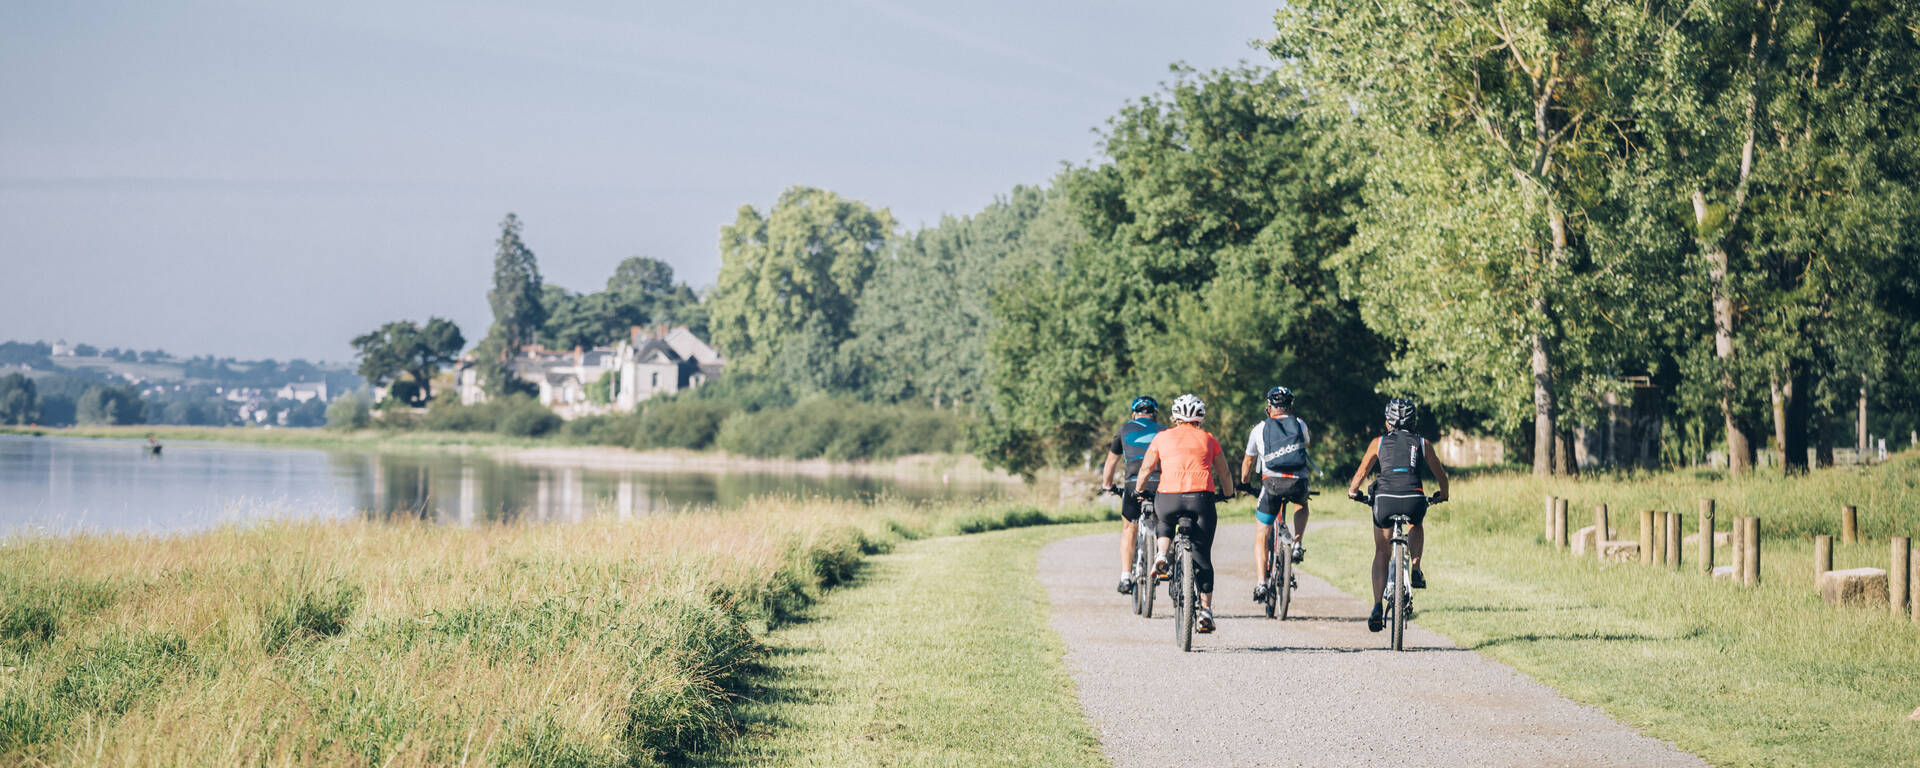 Bike ride along the banks of the Loire © Romain Bassenne